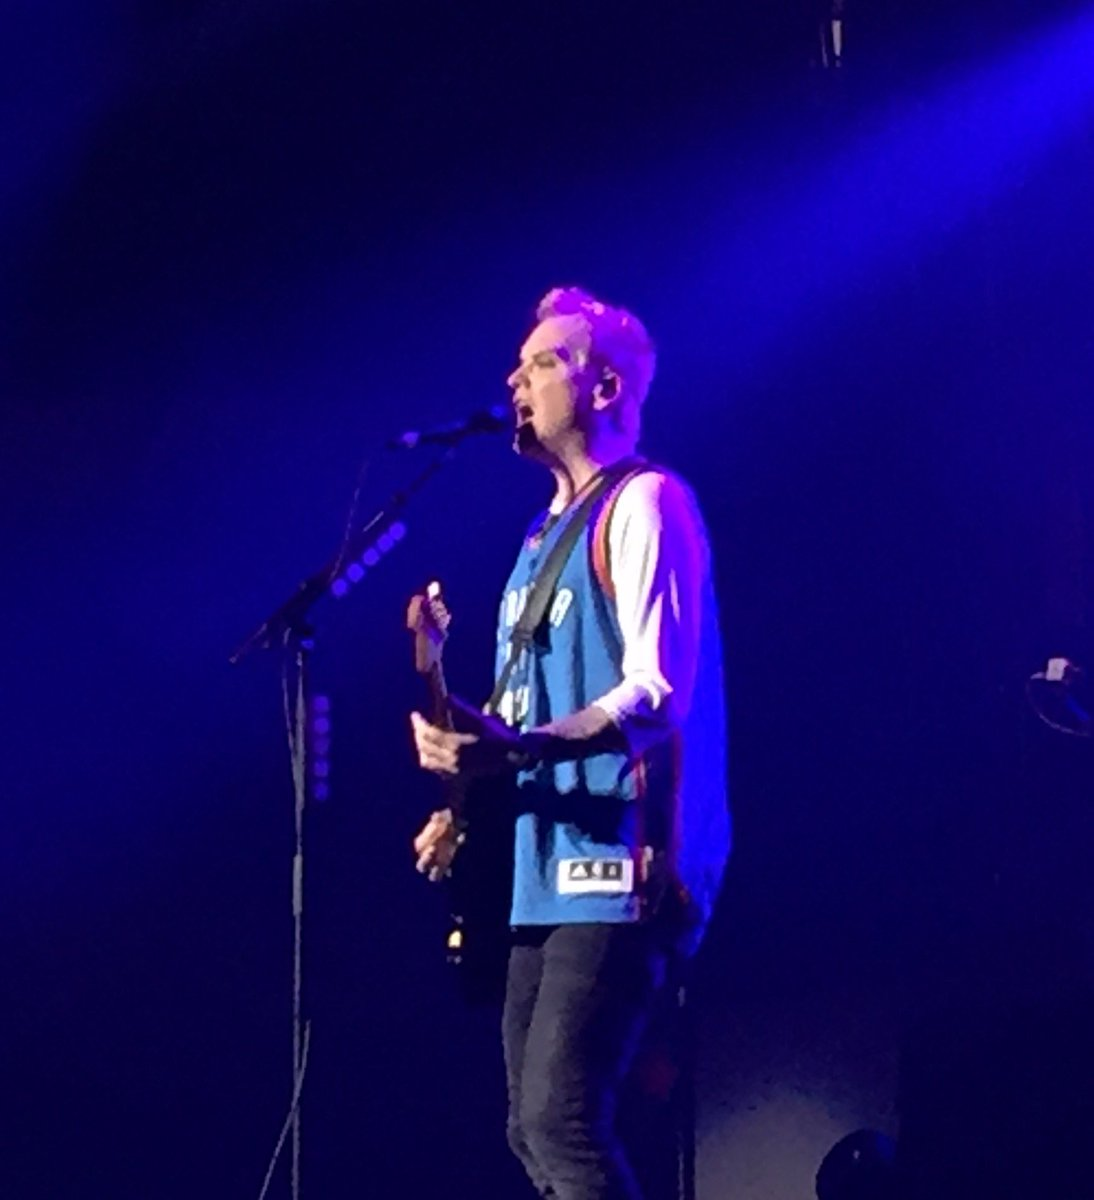 Matt Skiba from Blink-182 is rocking the blue OKC Thunder jersey! https://t.co/aFwkuBQh4I